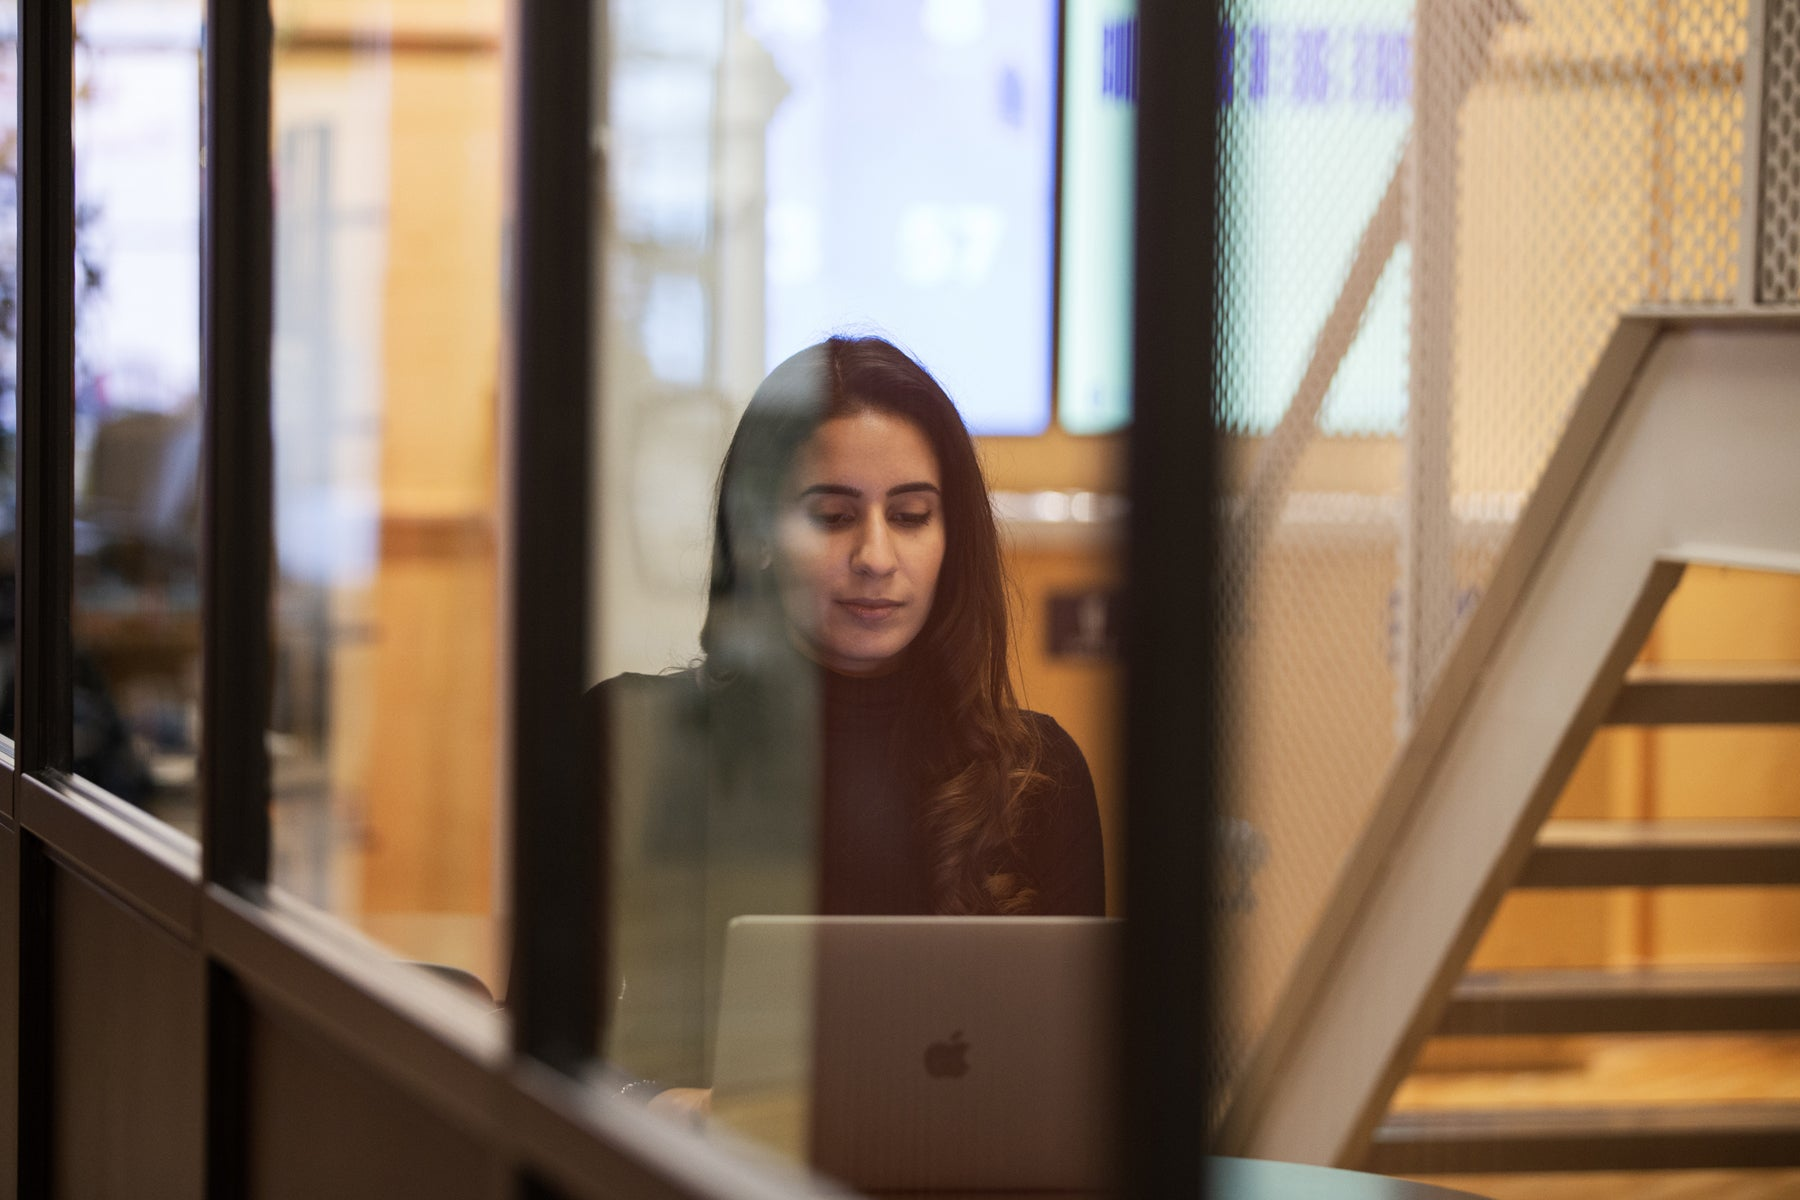 Nimi Kular, co-founder of Jaswant's Kitchen, working on her laptop at Toronto's Shopify office.